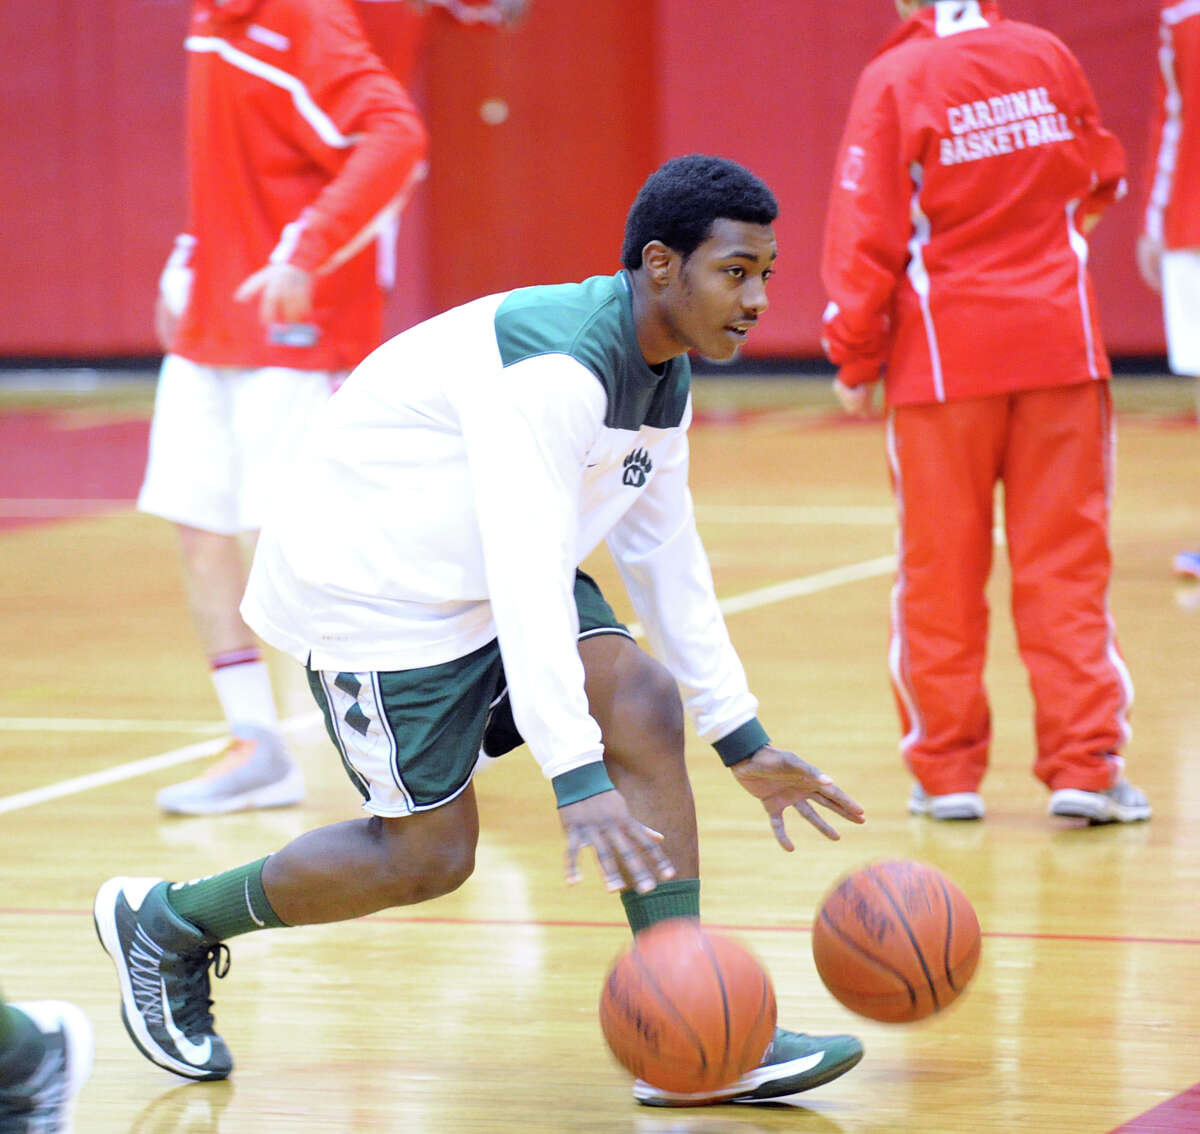 Jabari Dearof Norwalk warms-up prior to game against Greenwich at Greenwich, Tuesday night, Jan. 22, 2013. Dear's brother Roy Kane also plays on the team.